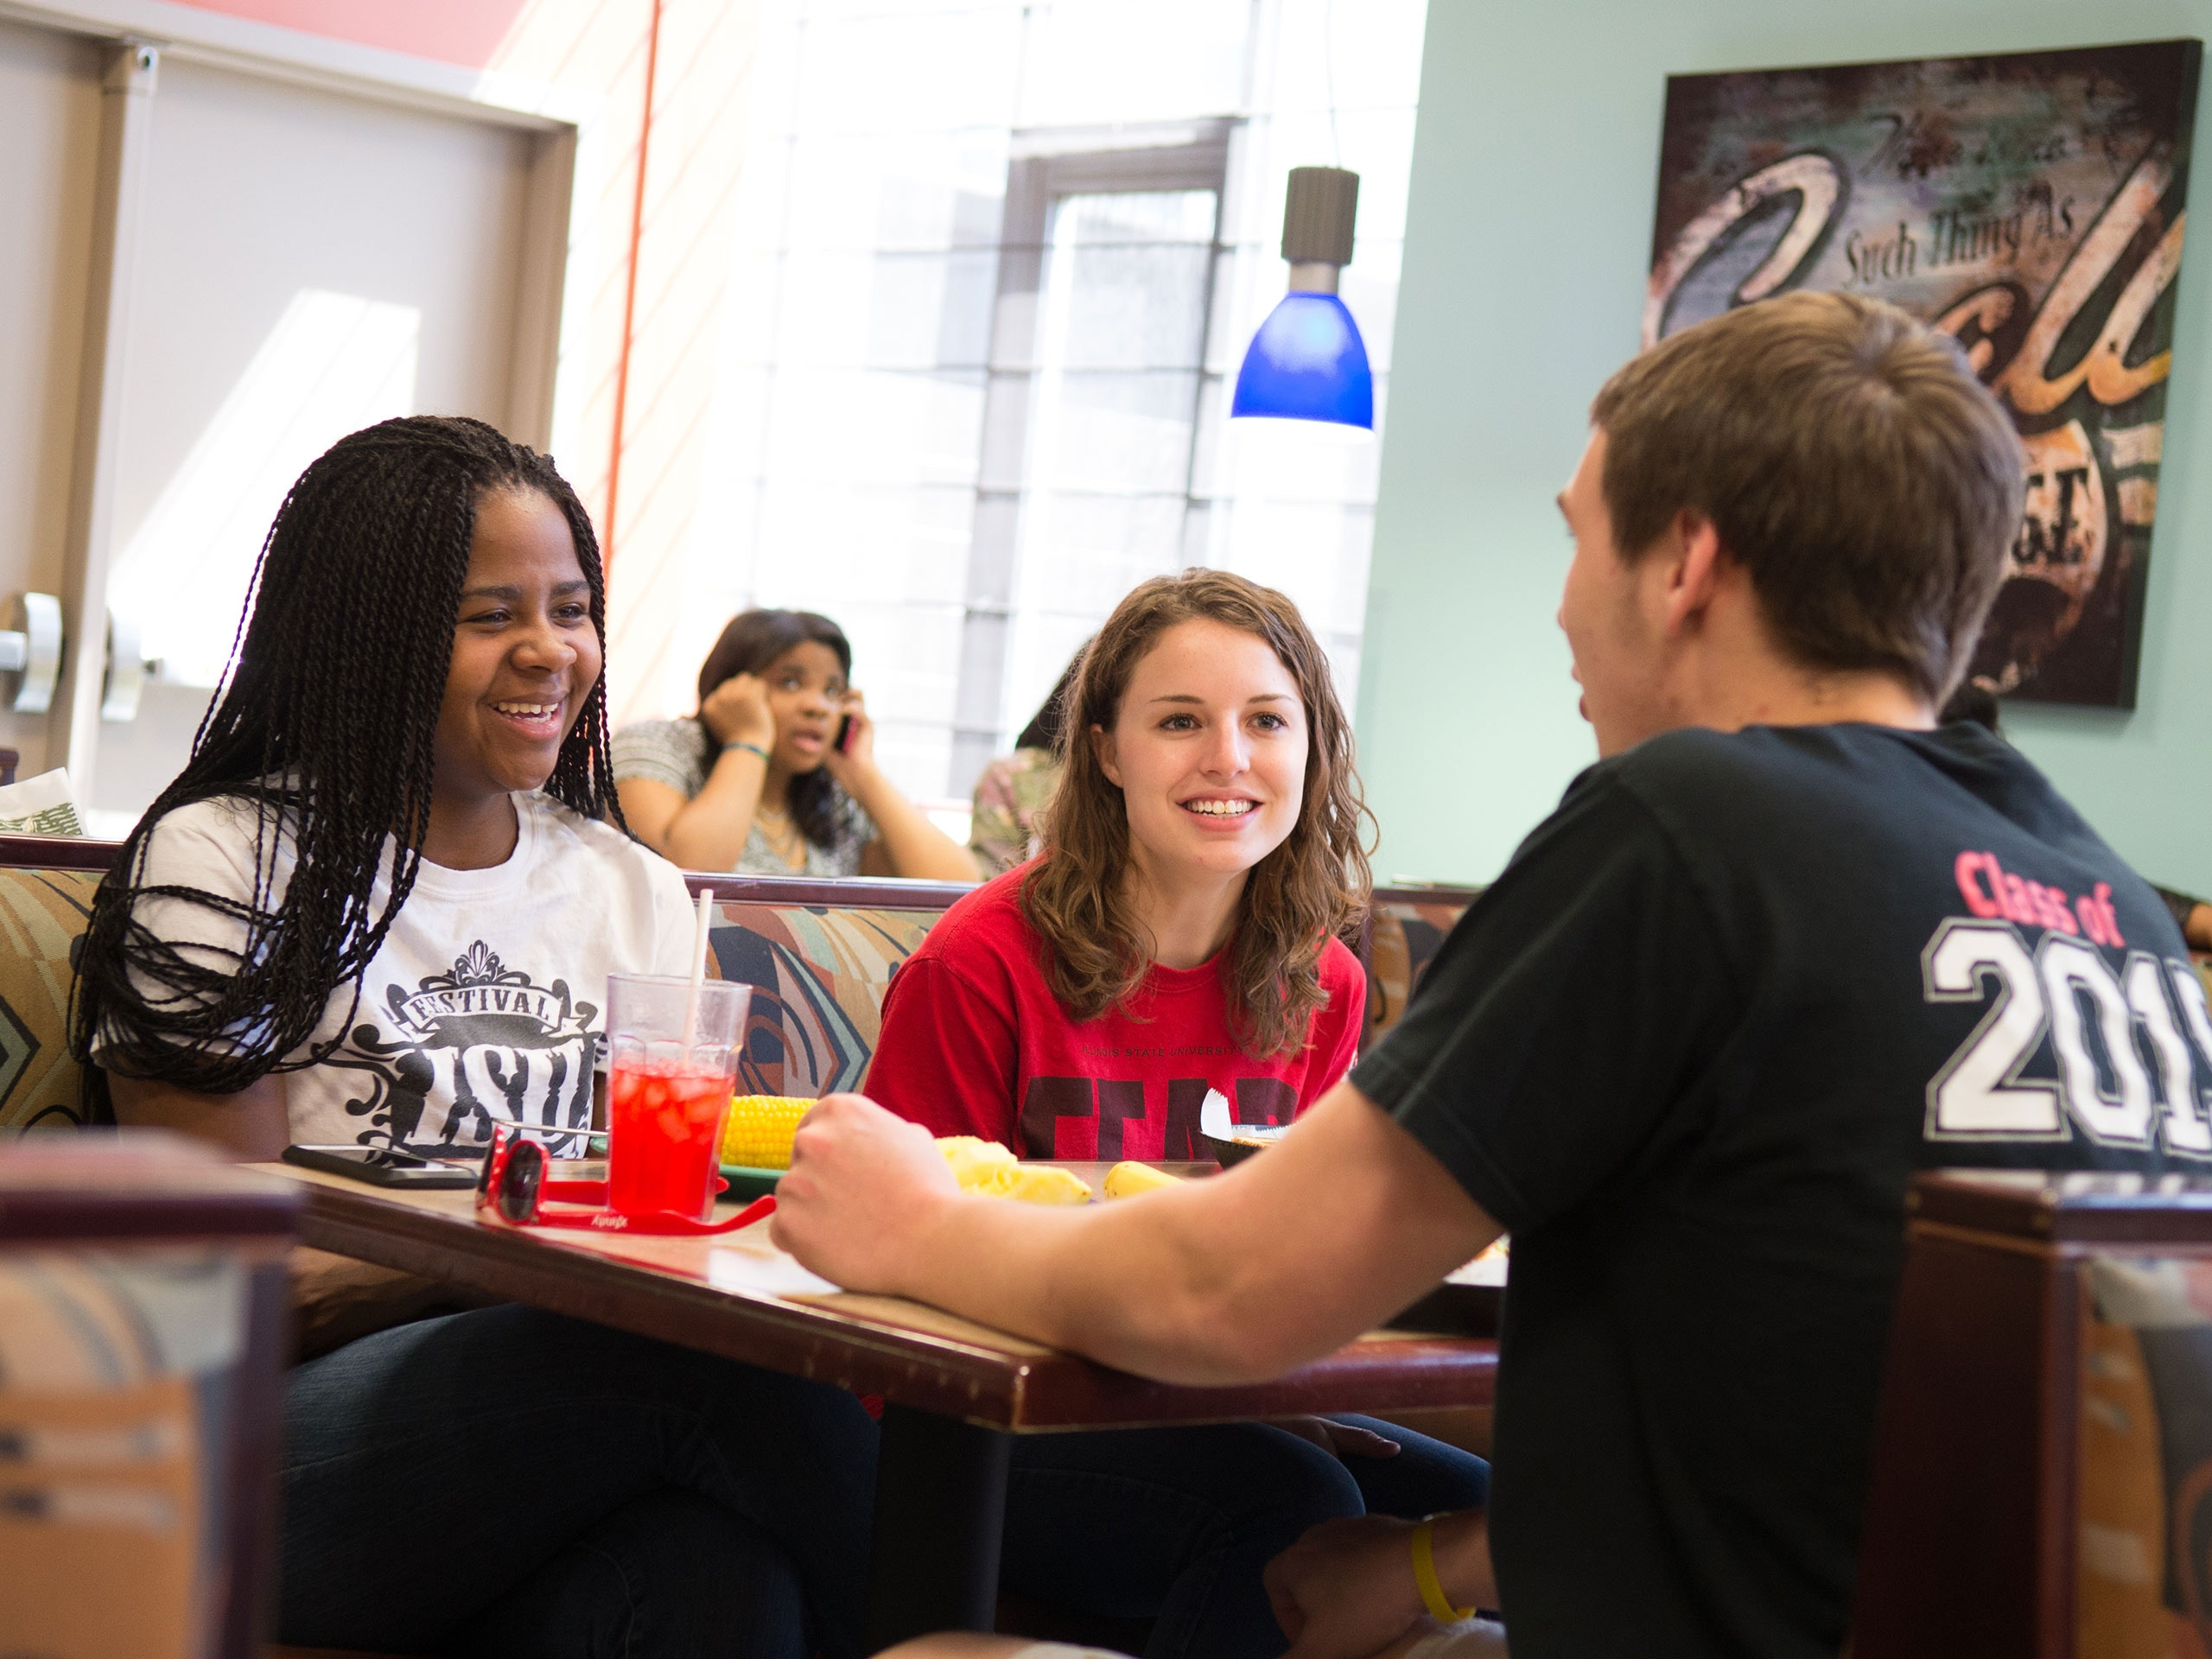 Students sitting in a dining center, talking during a meal.